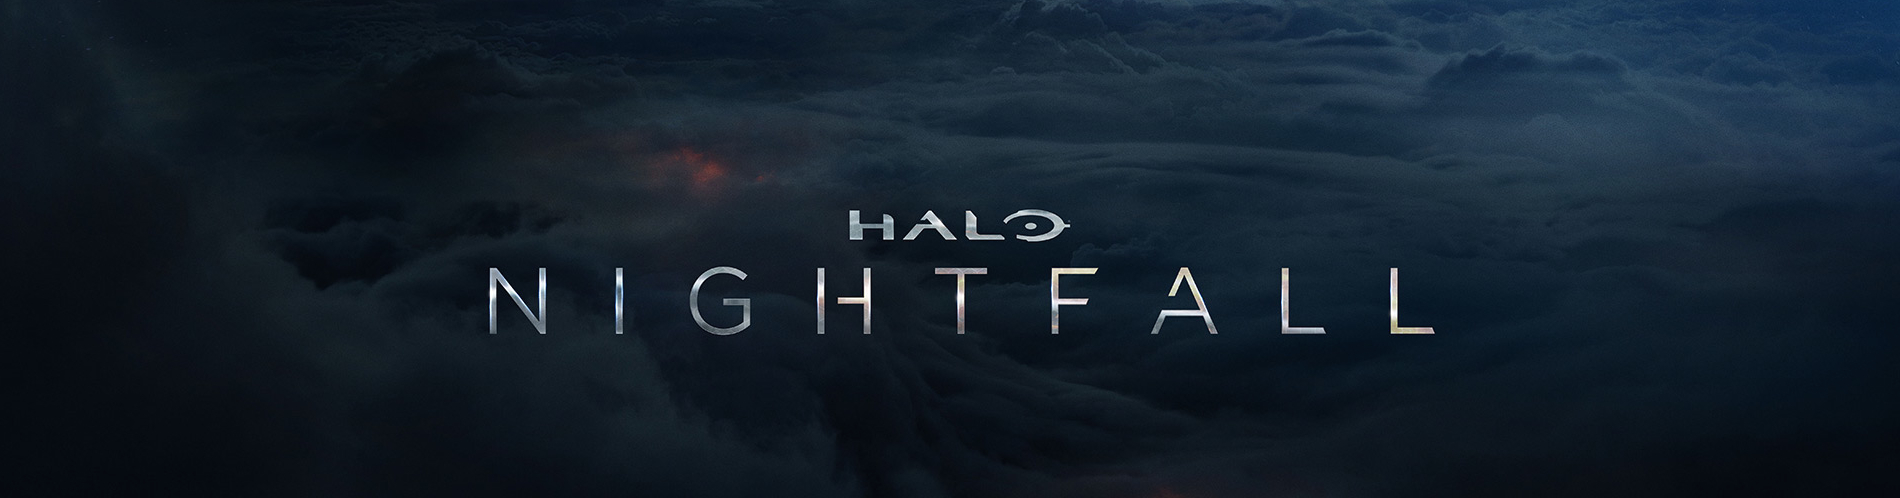 Halo Nightfall Digital Series Headed to Xbox One in November